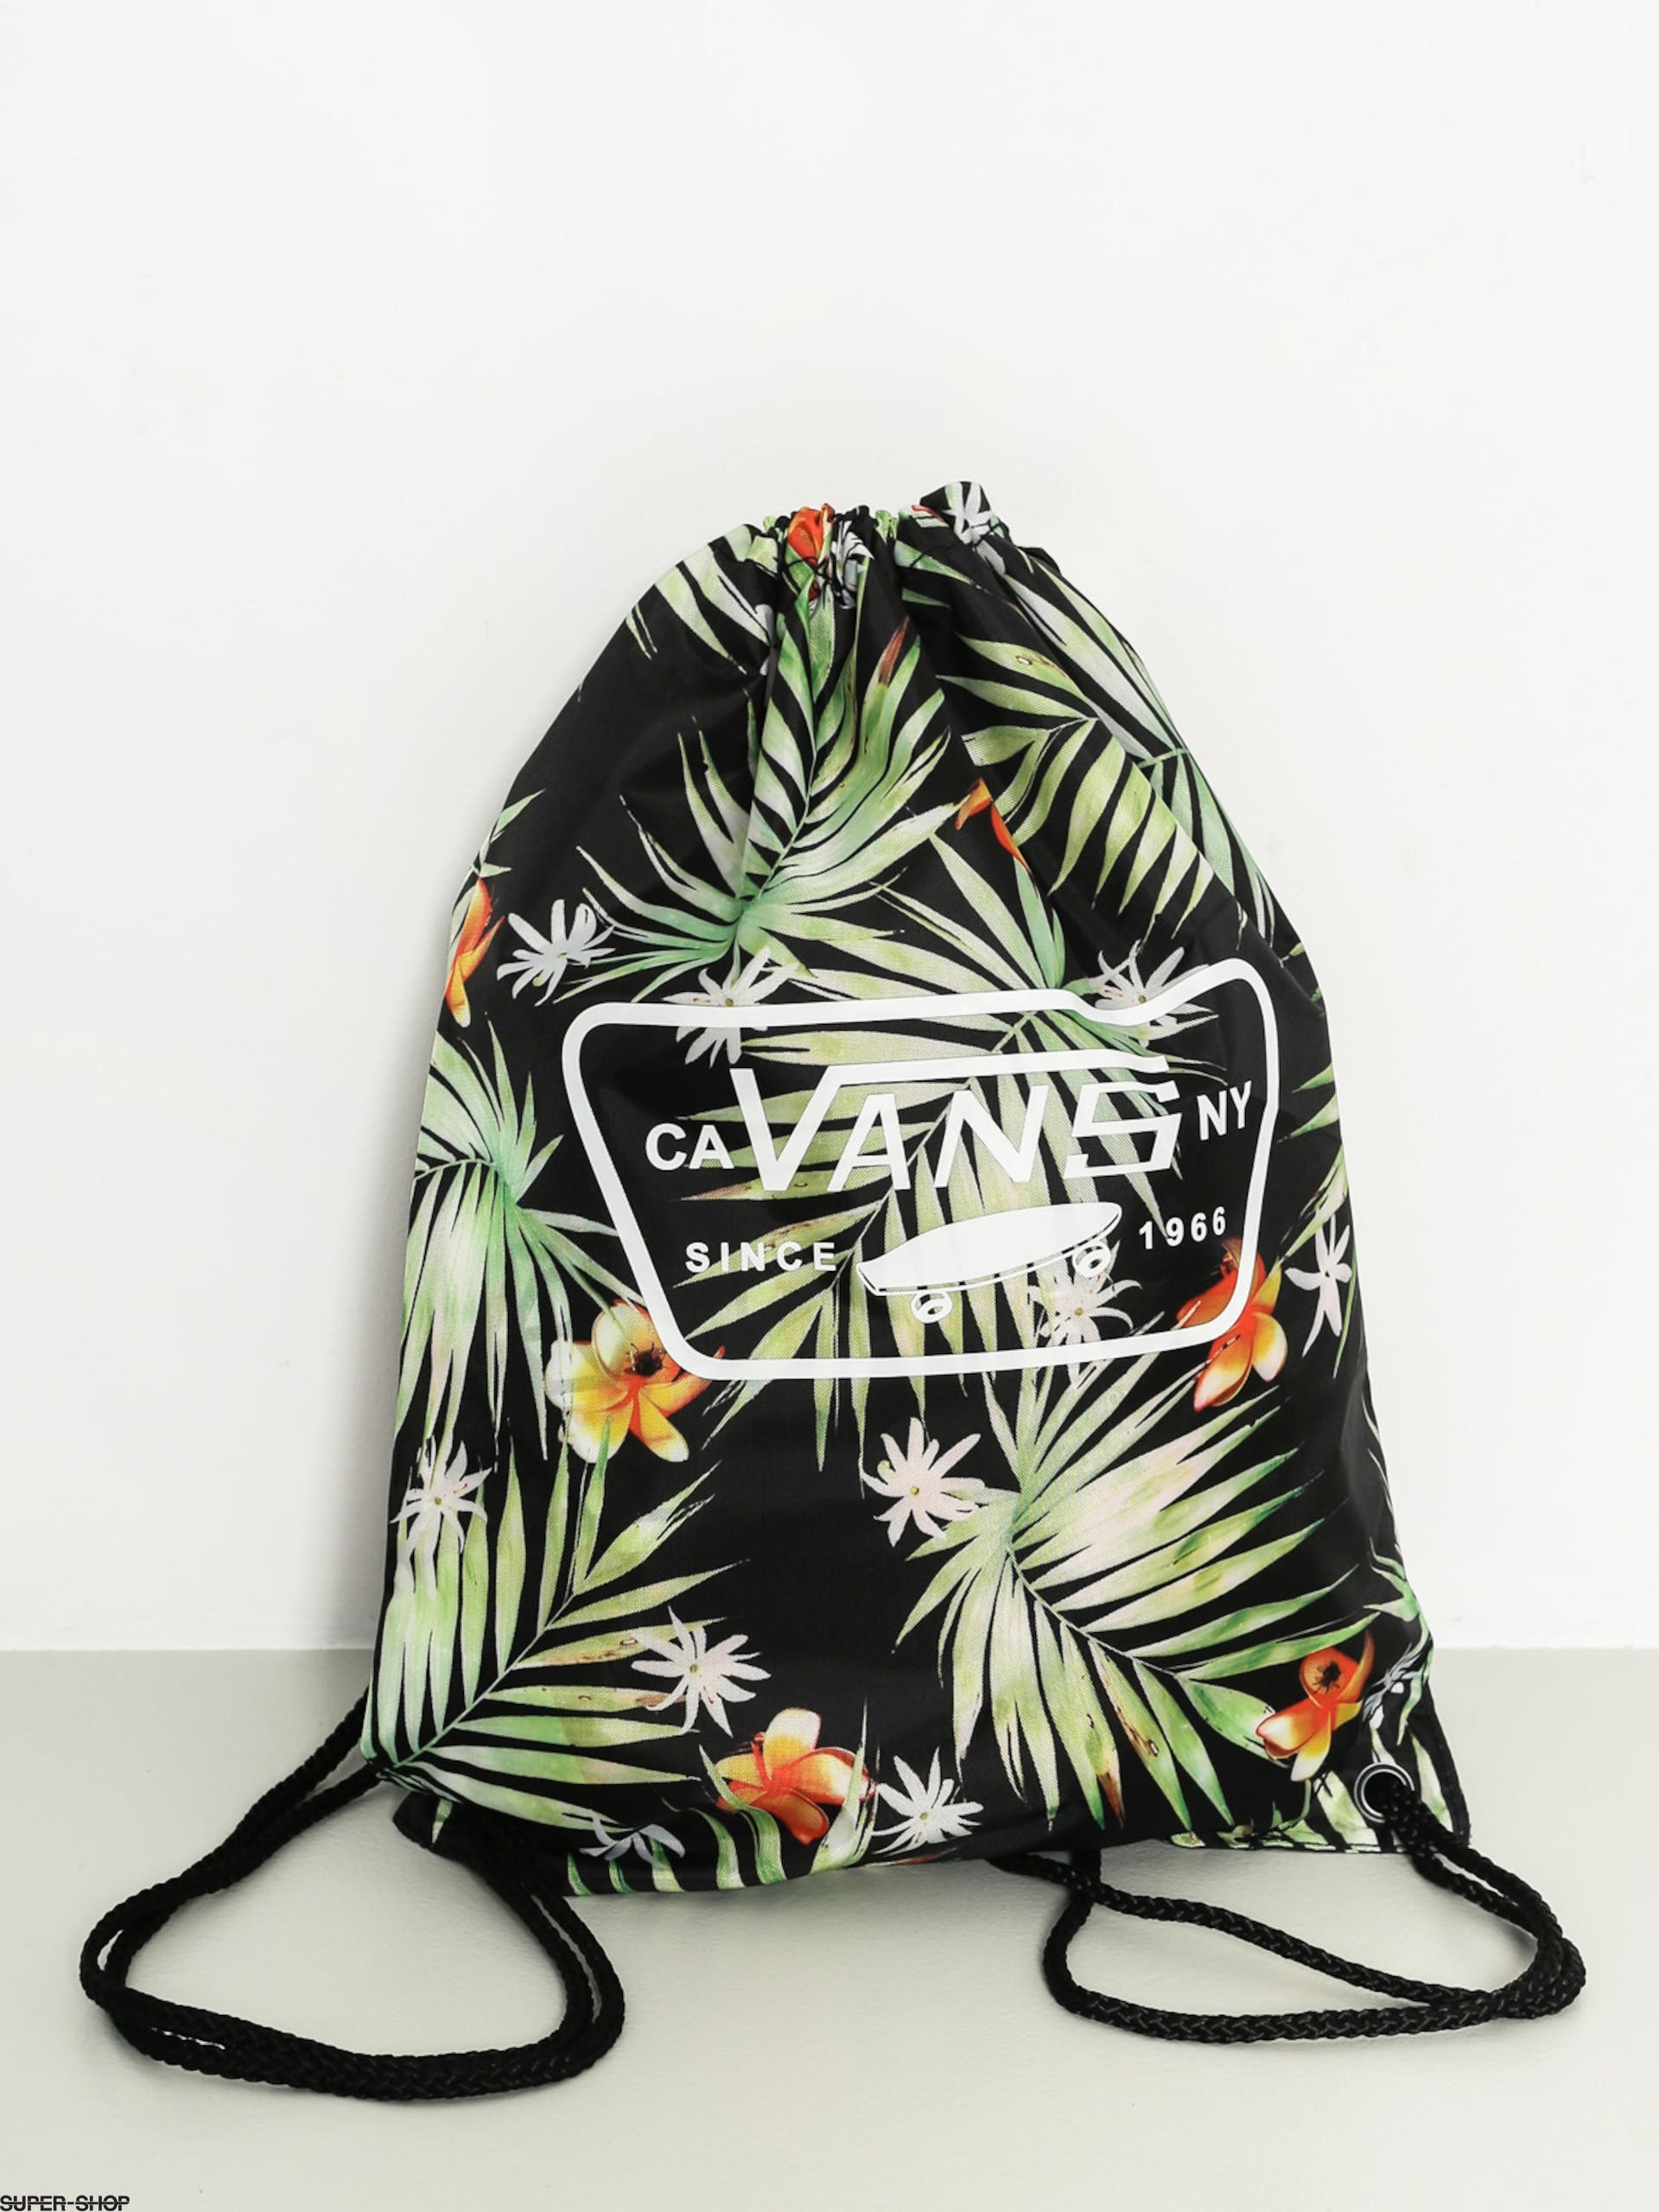 844698-w1920-vans-backpack-league-bench-bag-black-decay-palm.jpg 1de24b2522